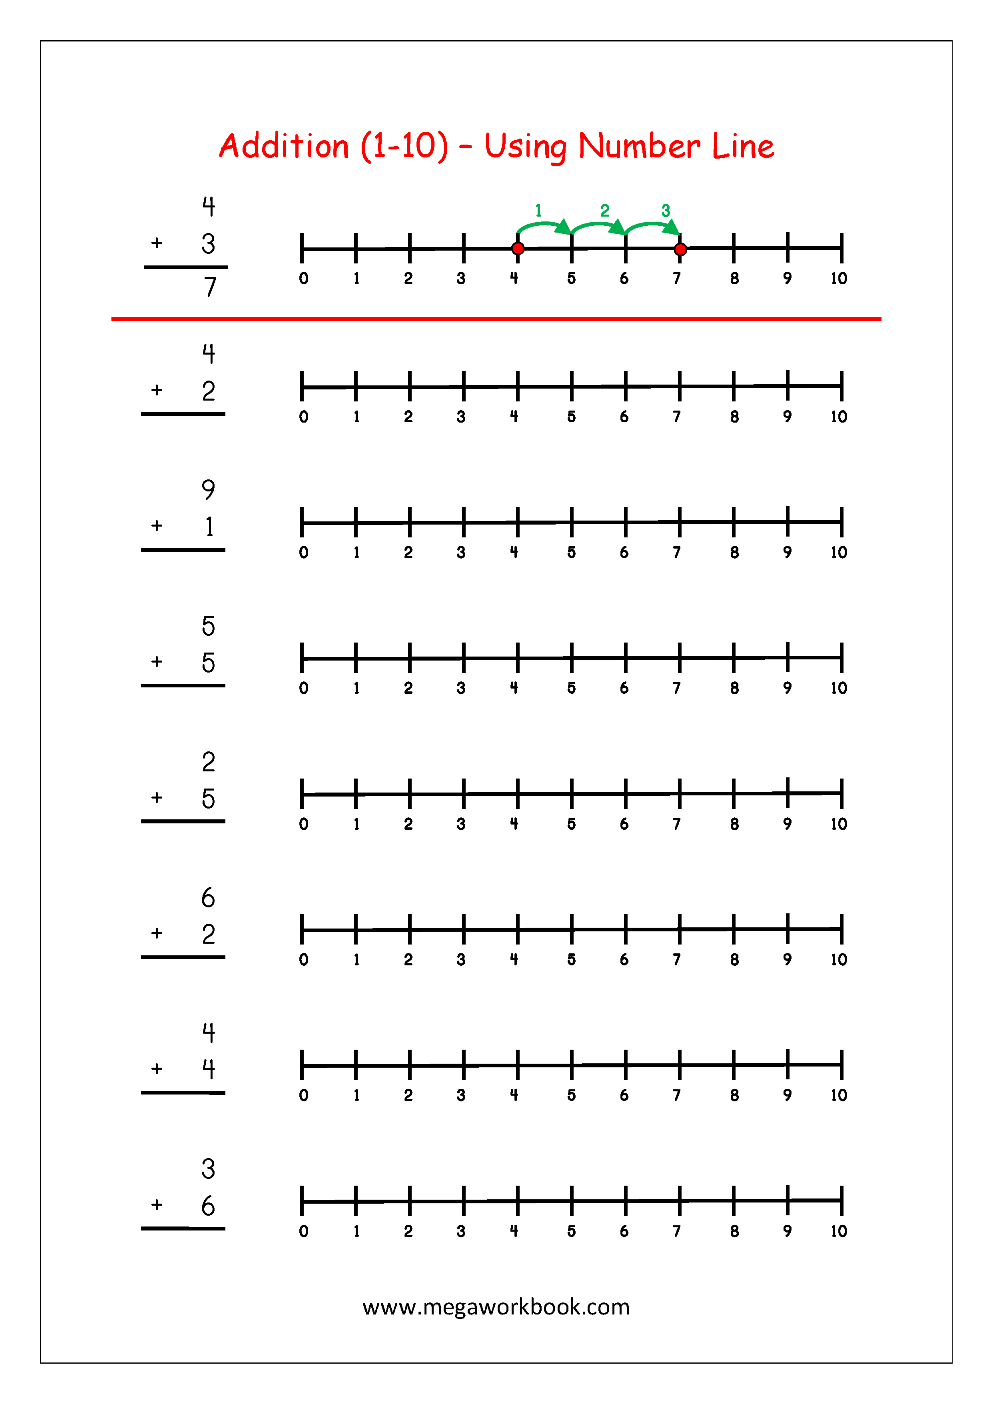 Free Printable Number Addition Worksheets (1-10) For Kindergarten - Free Printable Number Line For Kids